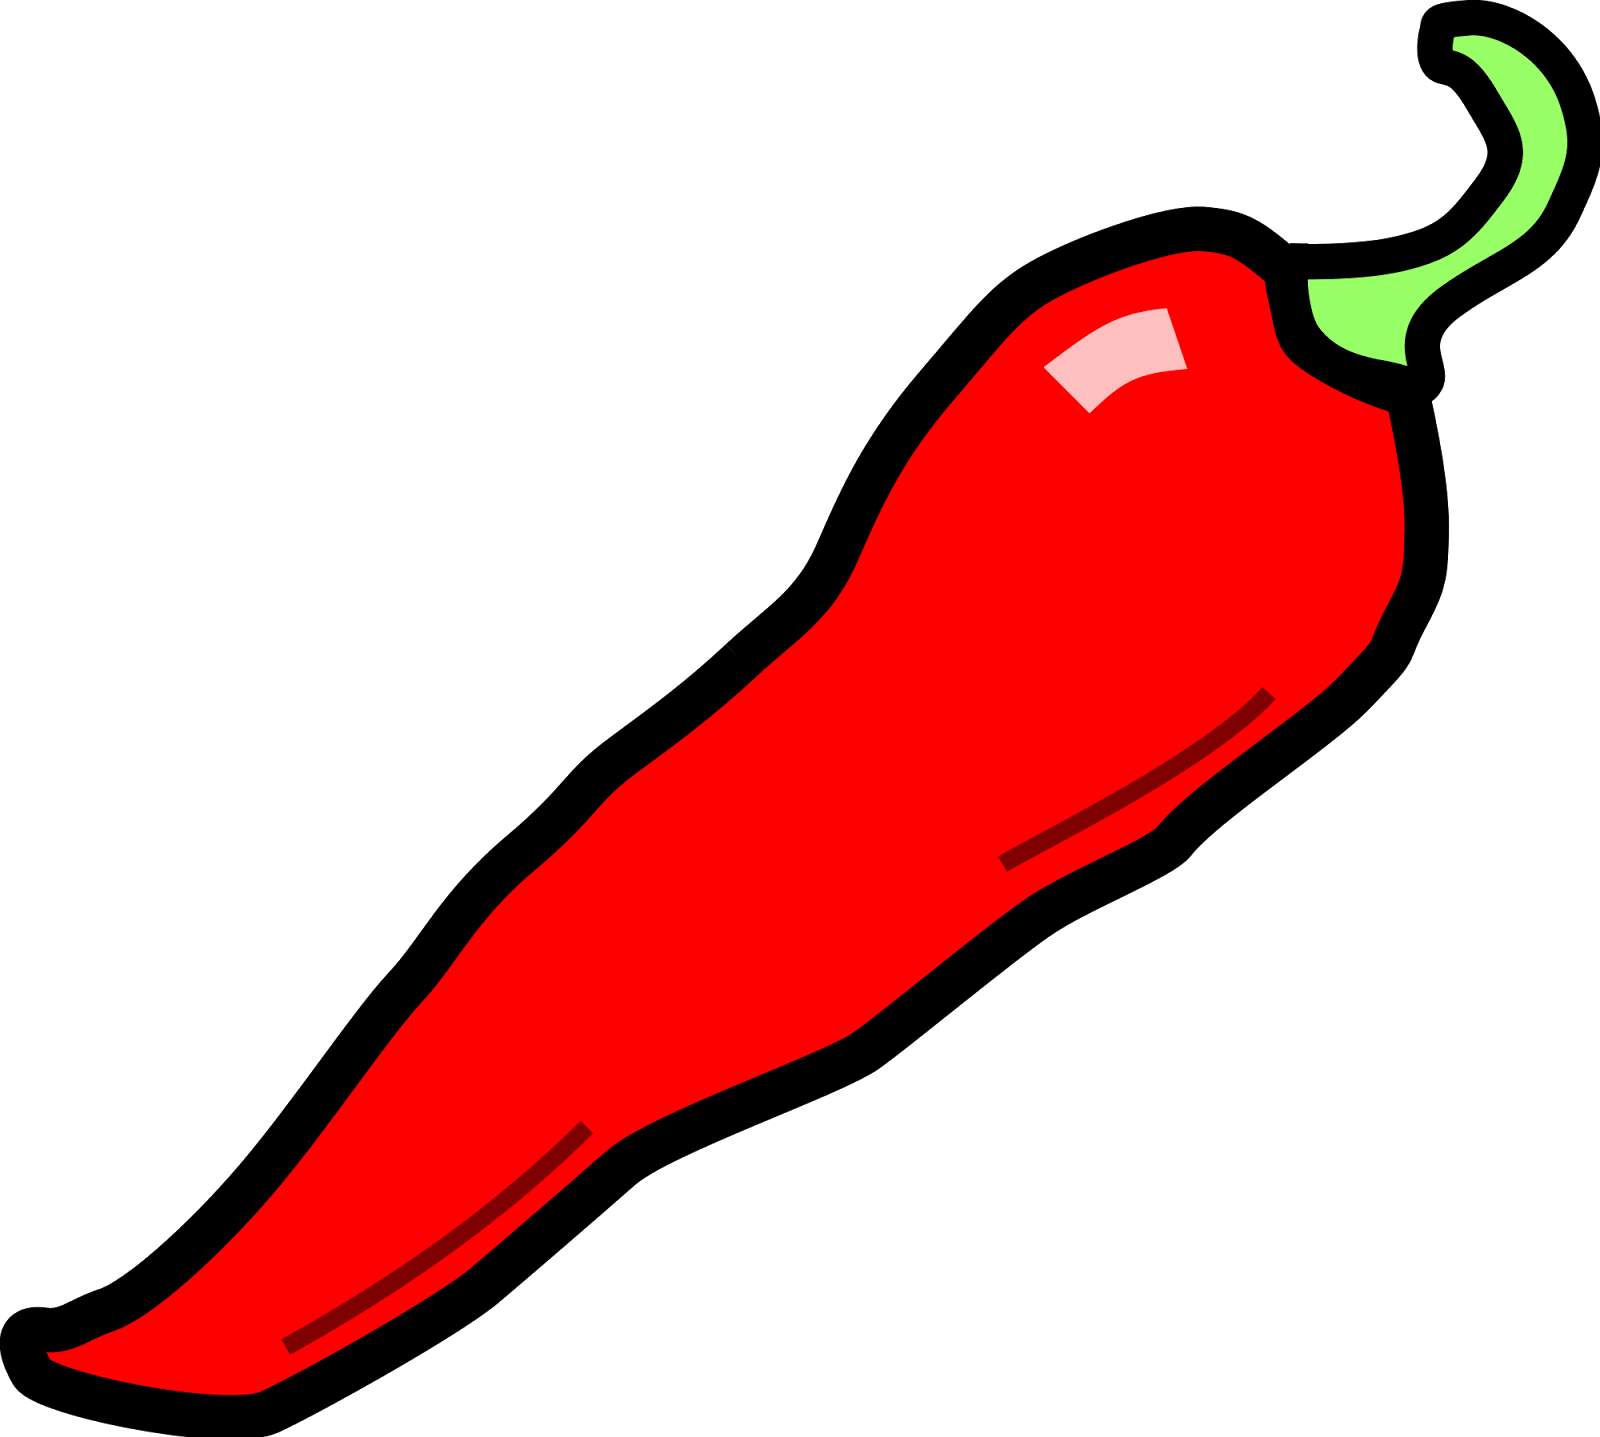 Hot clipart chilly. Principal ponderings achievement and